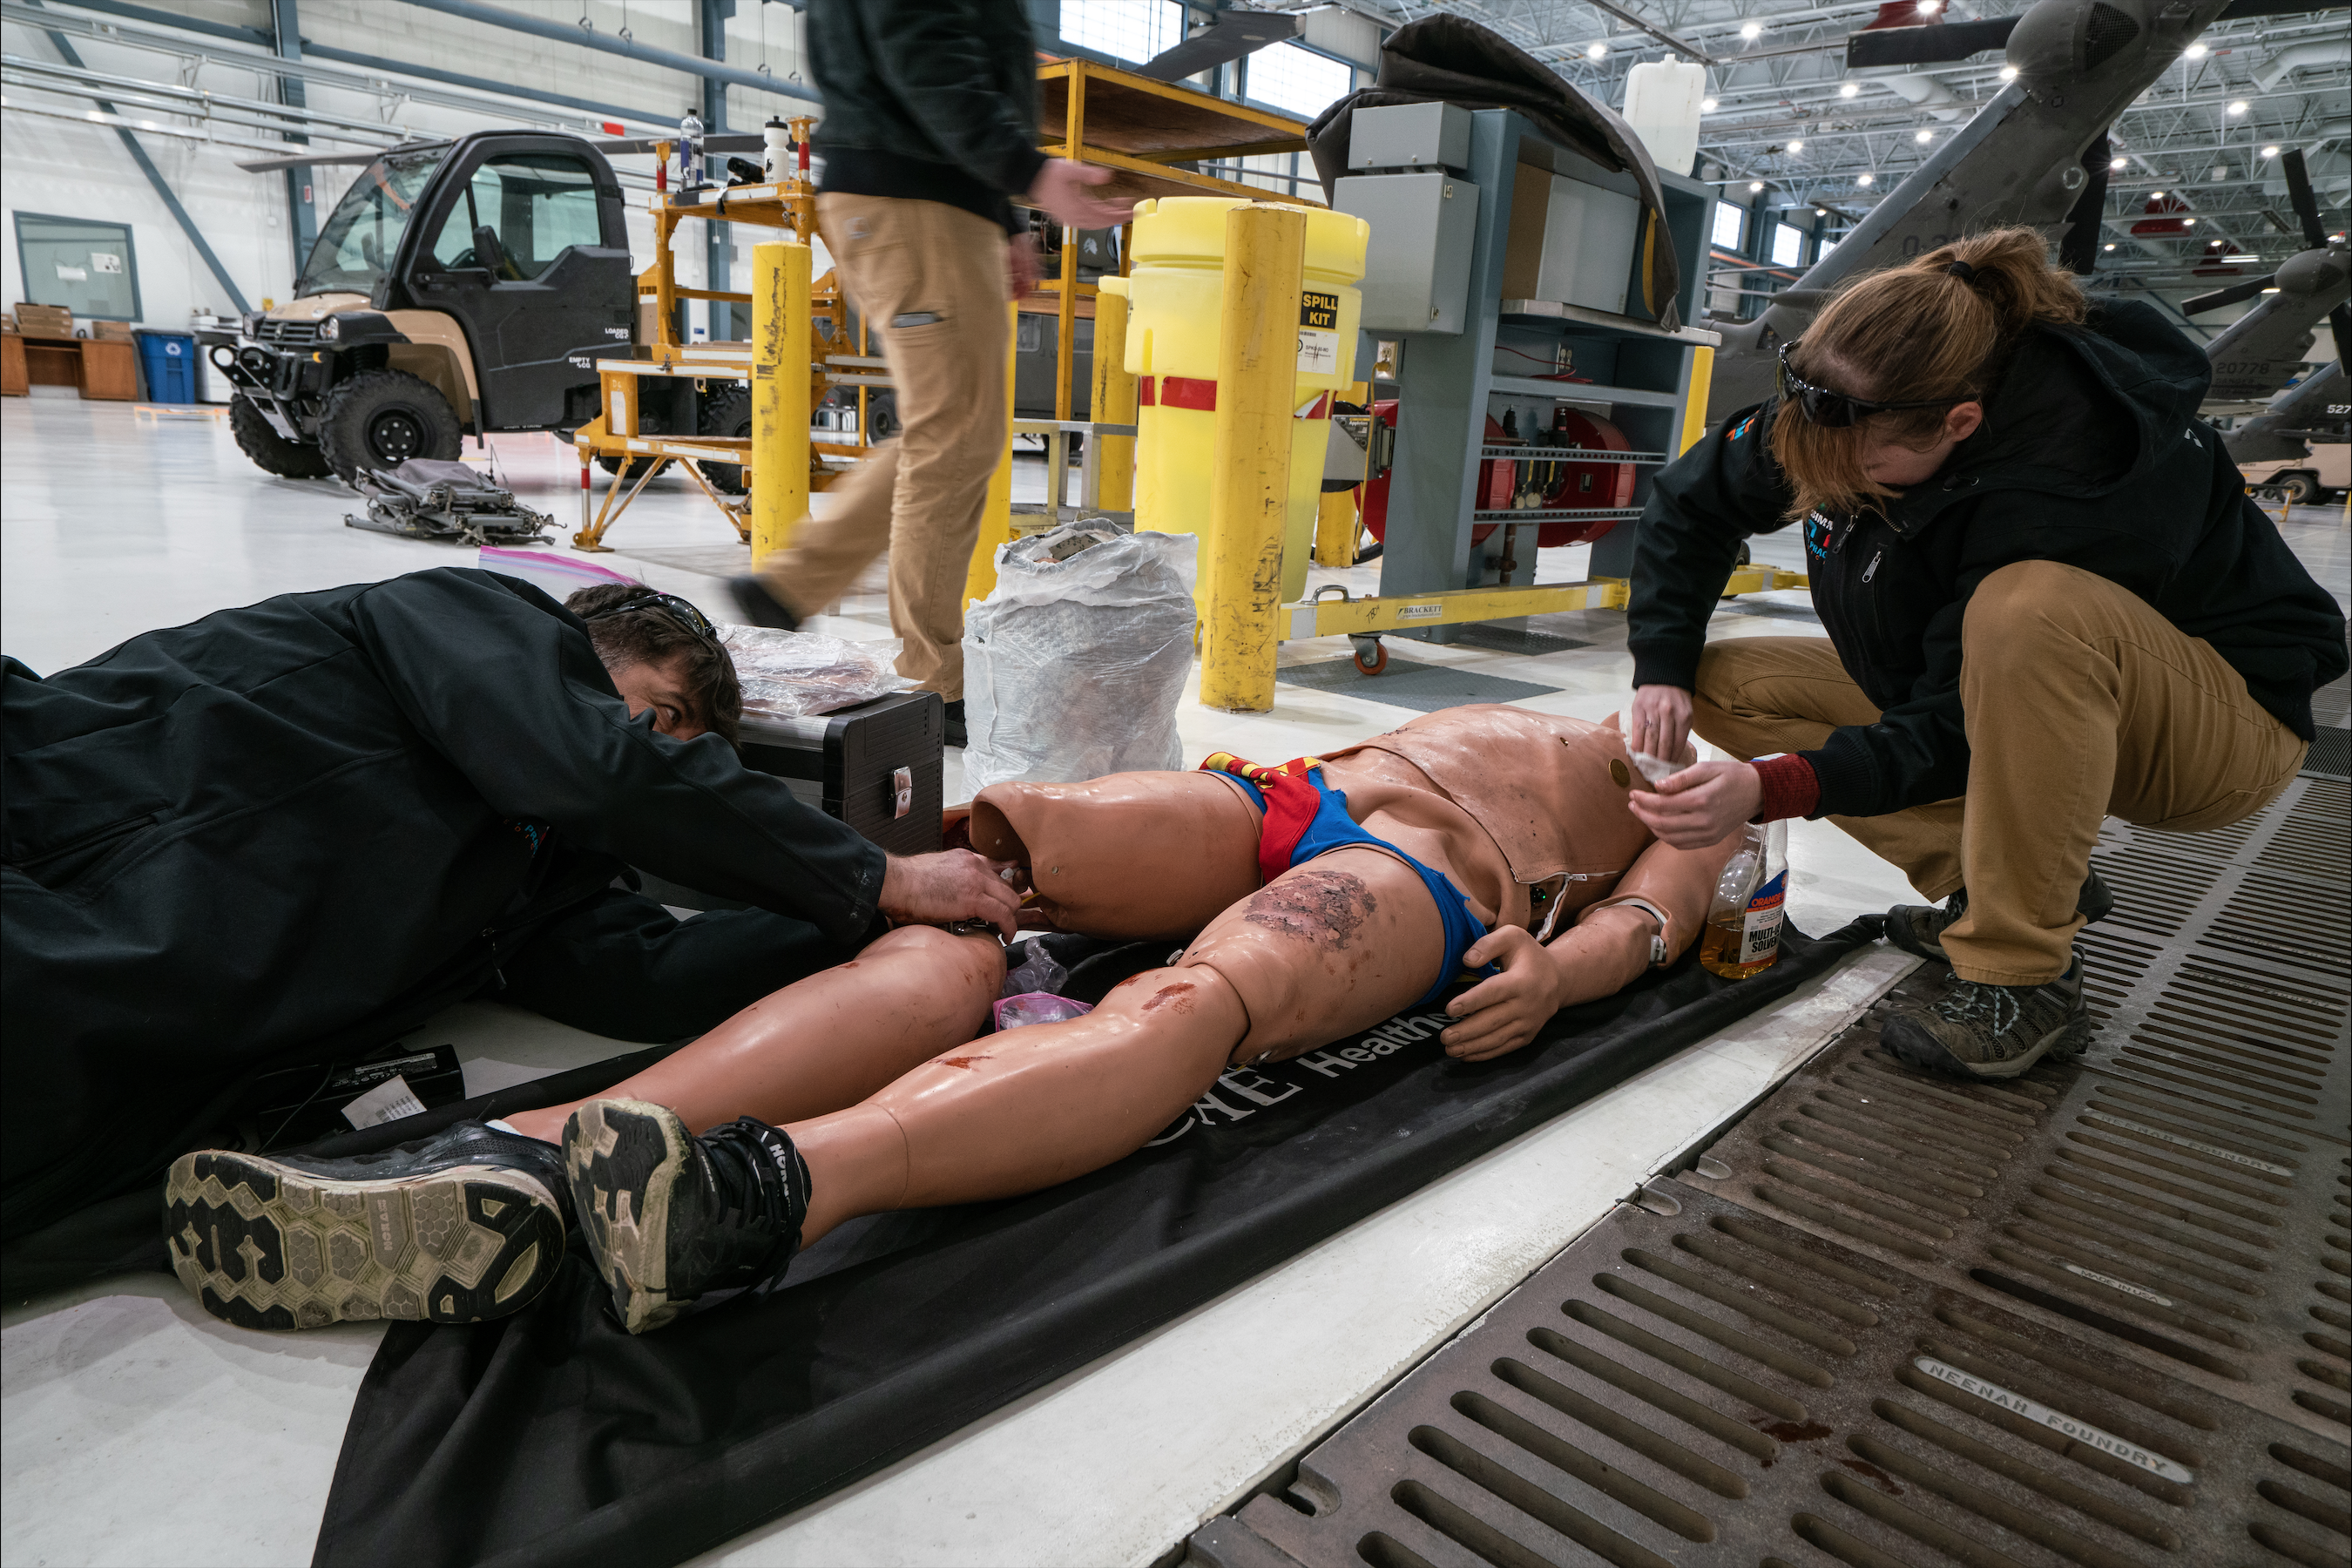 SIM-MT team rigging up a high-fidelity mannequin for Simulation